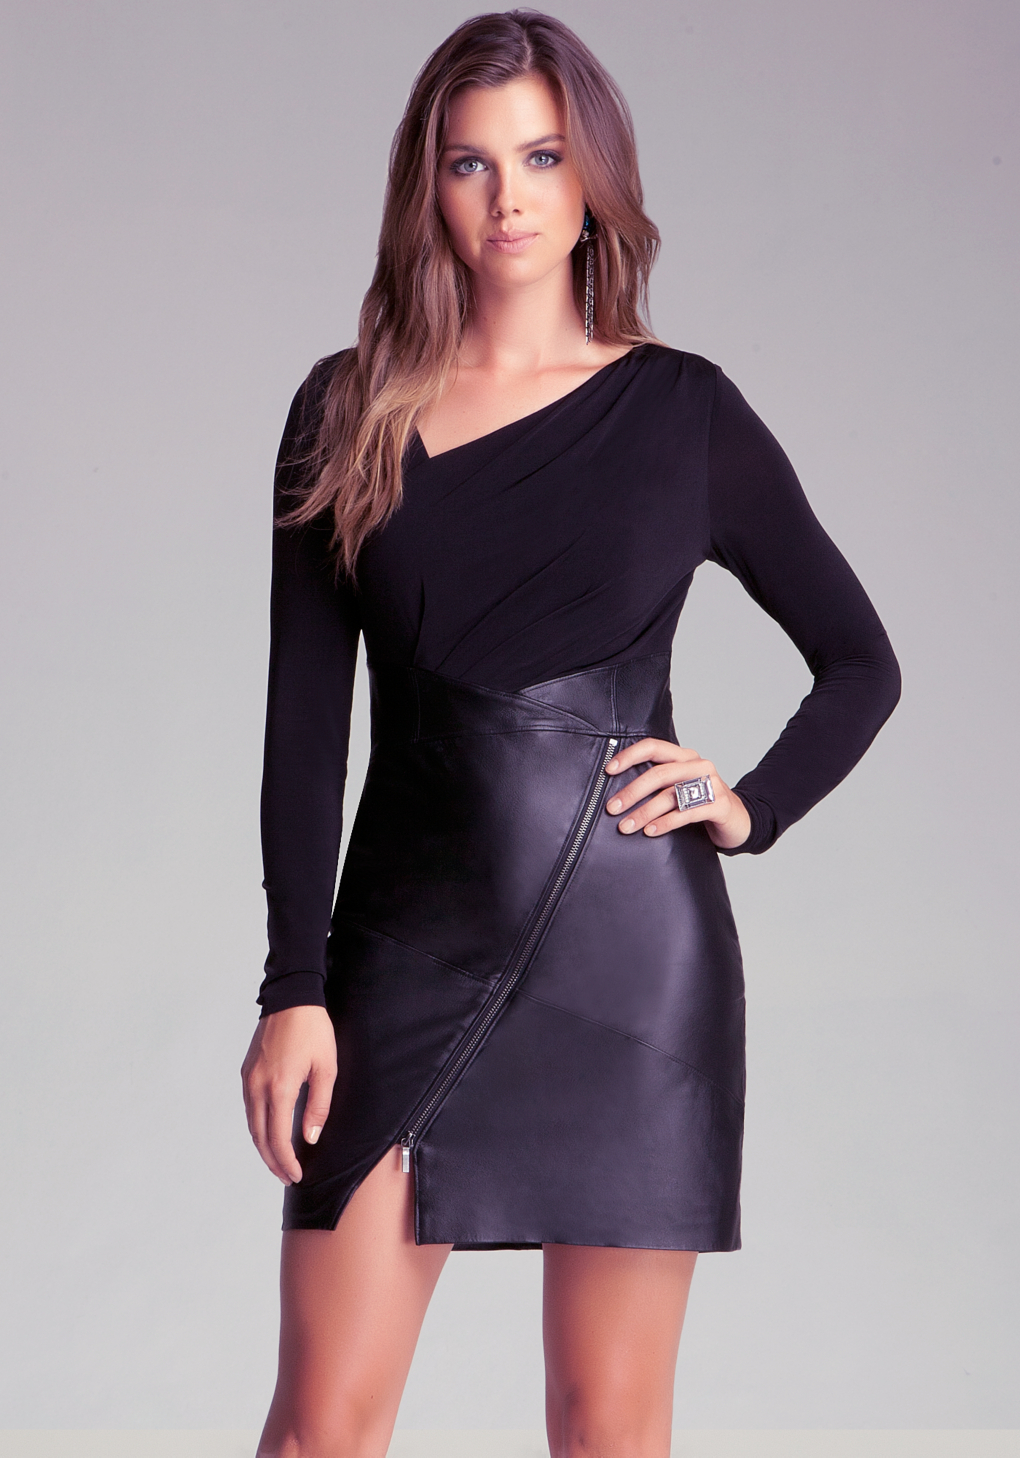 Bebe Leather Skirt Dress with Zipper in Black | Lyst